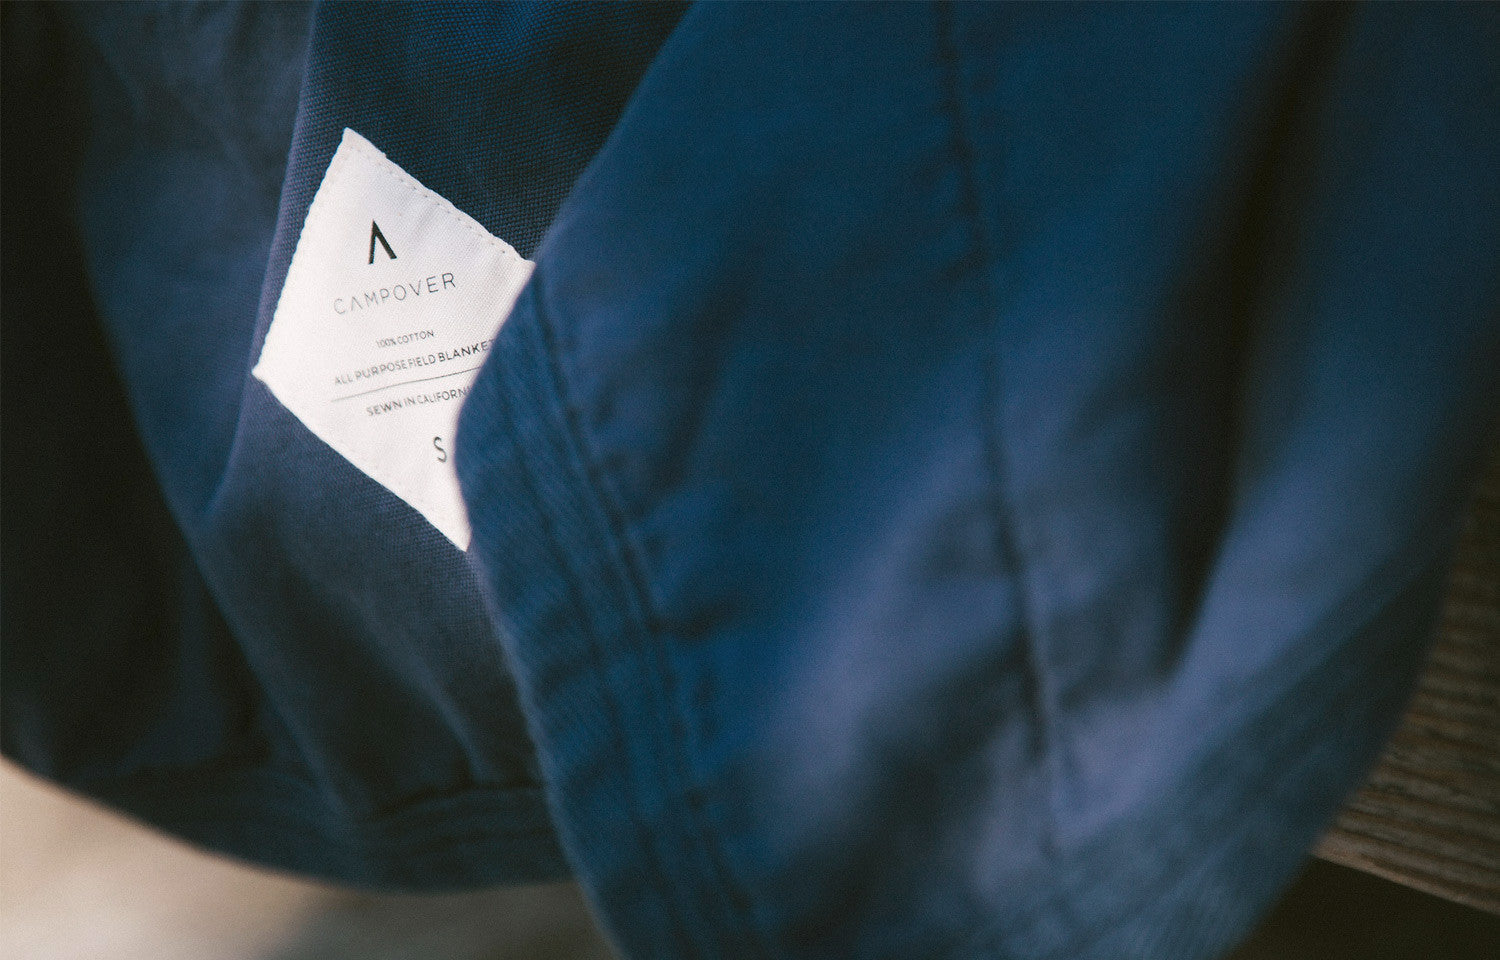 All Purpose Field Blanket in Navy by Campover | Label detail & lifestyle